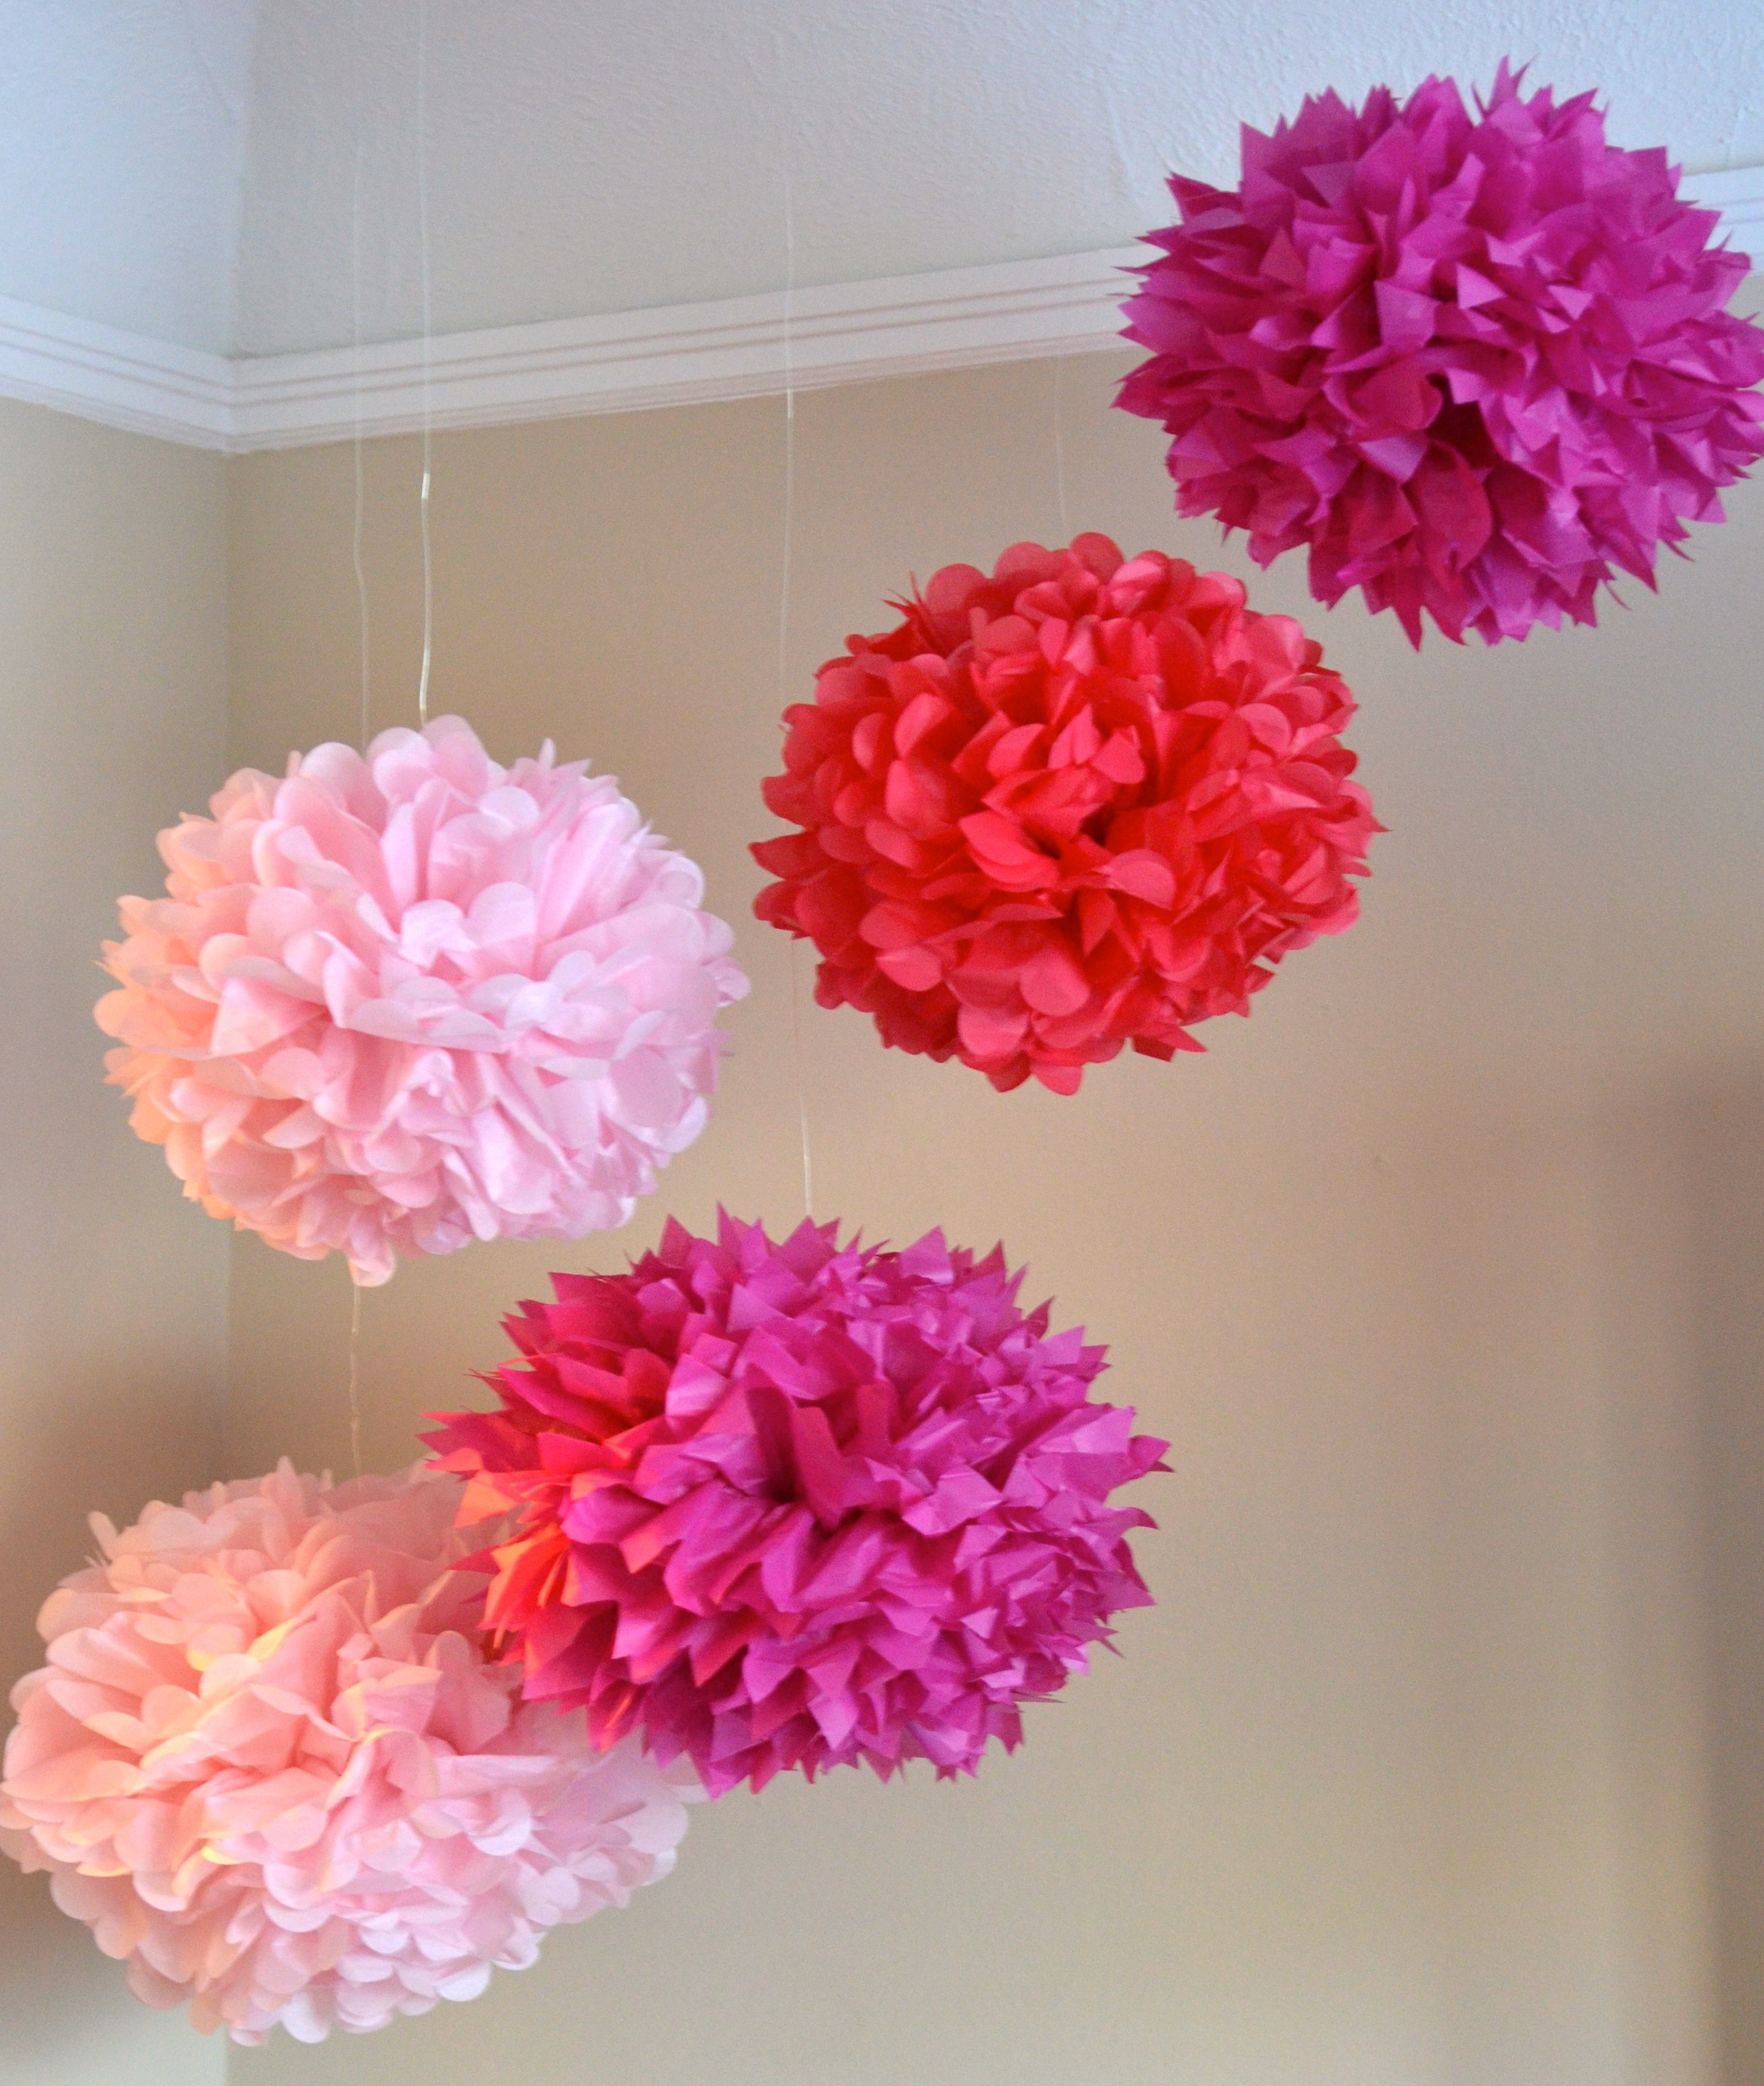 paper tissue pom poms How to: diy how to make tissue pom poms diy tissue paper pom poms how to make tissue paper balls diy tissue paper puffs category howto & style show more show less.